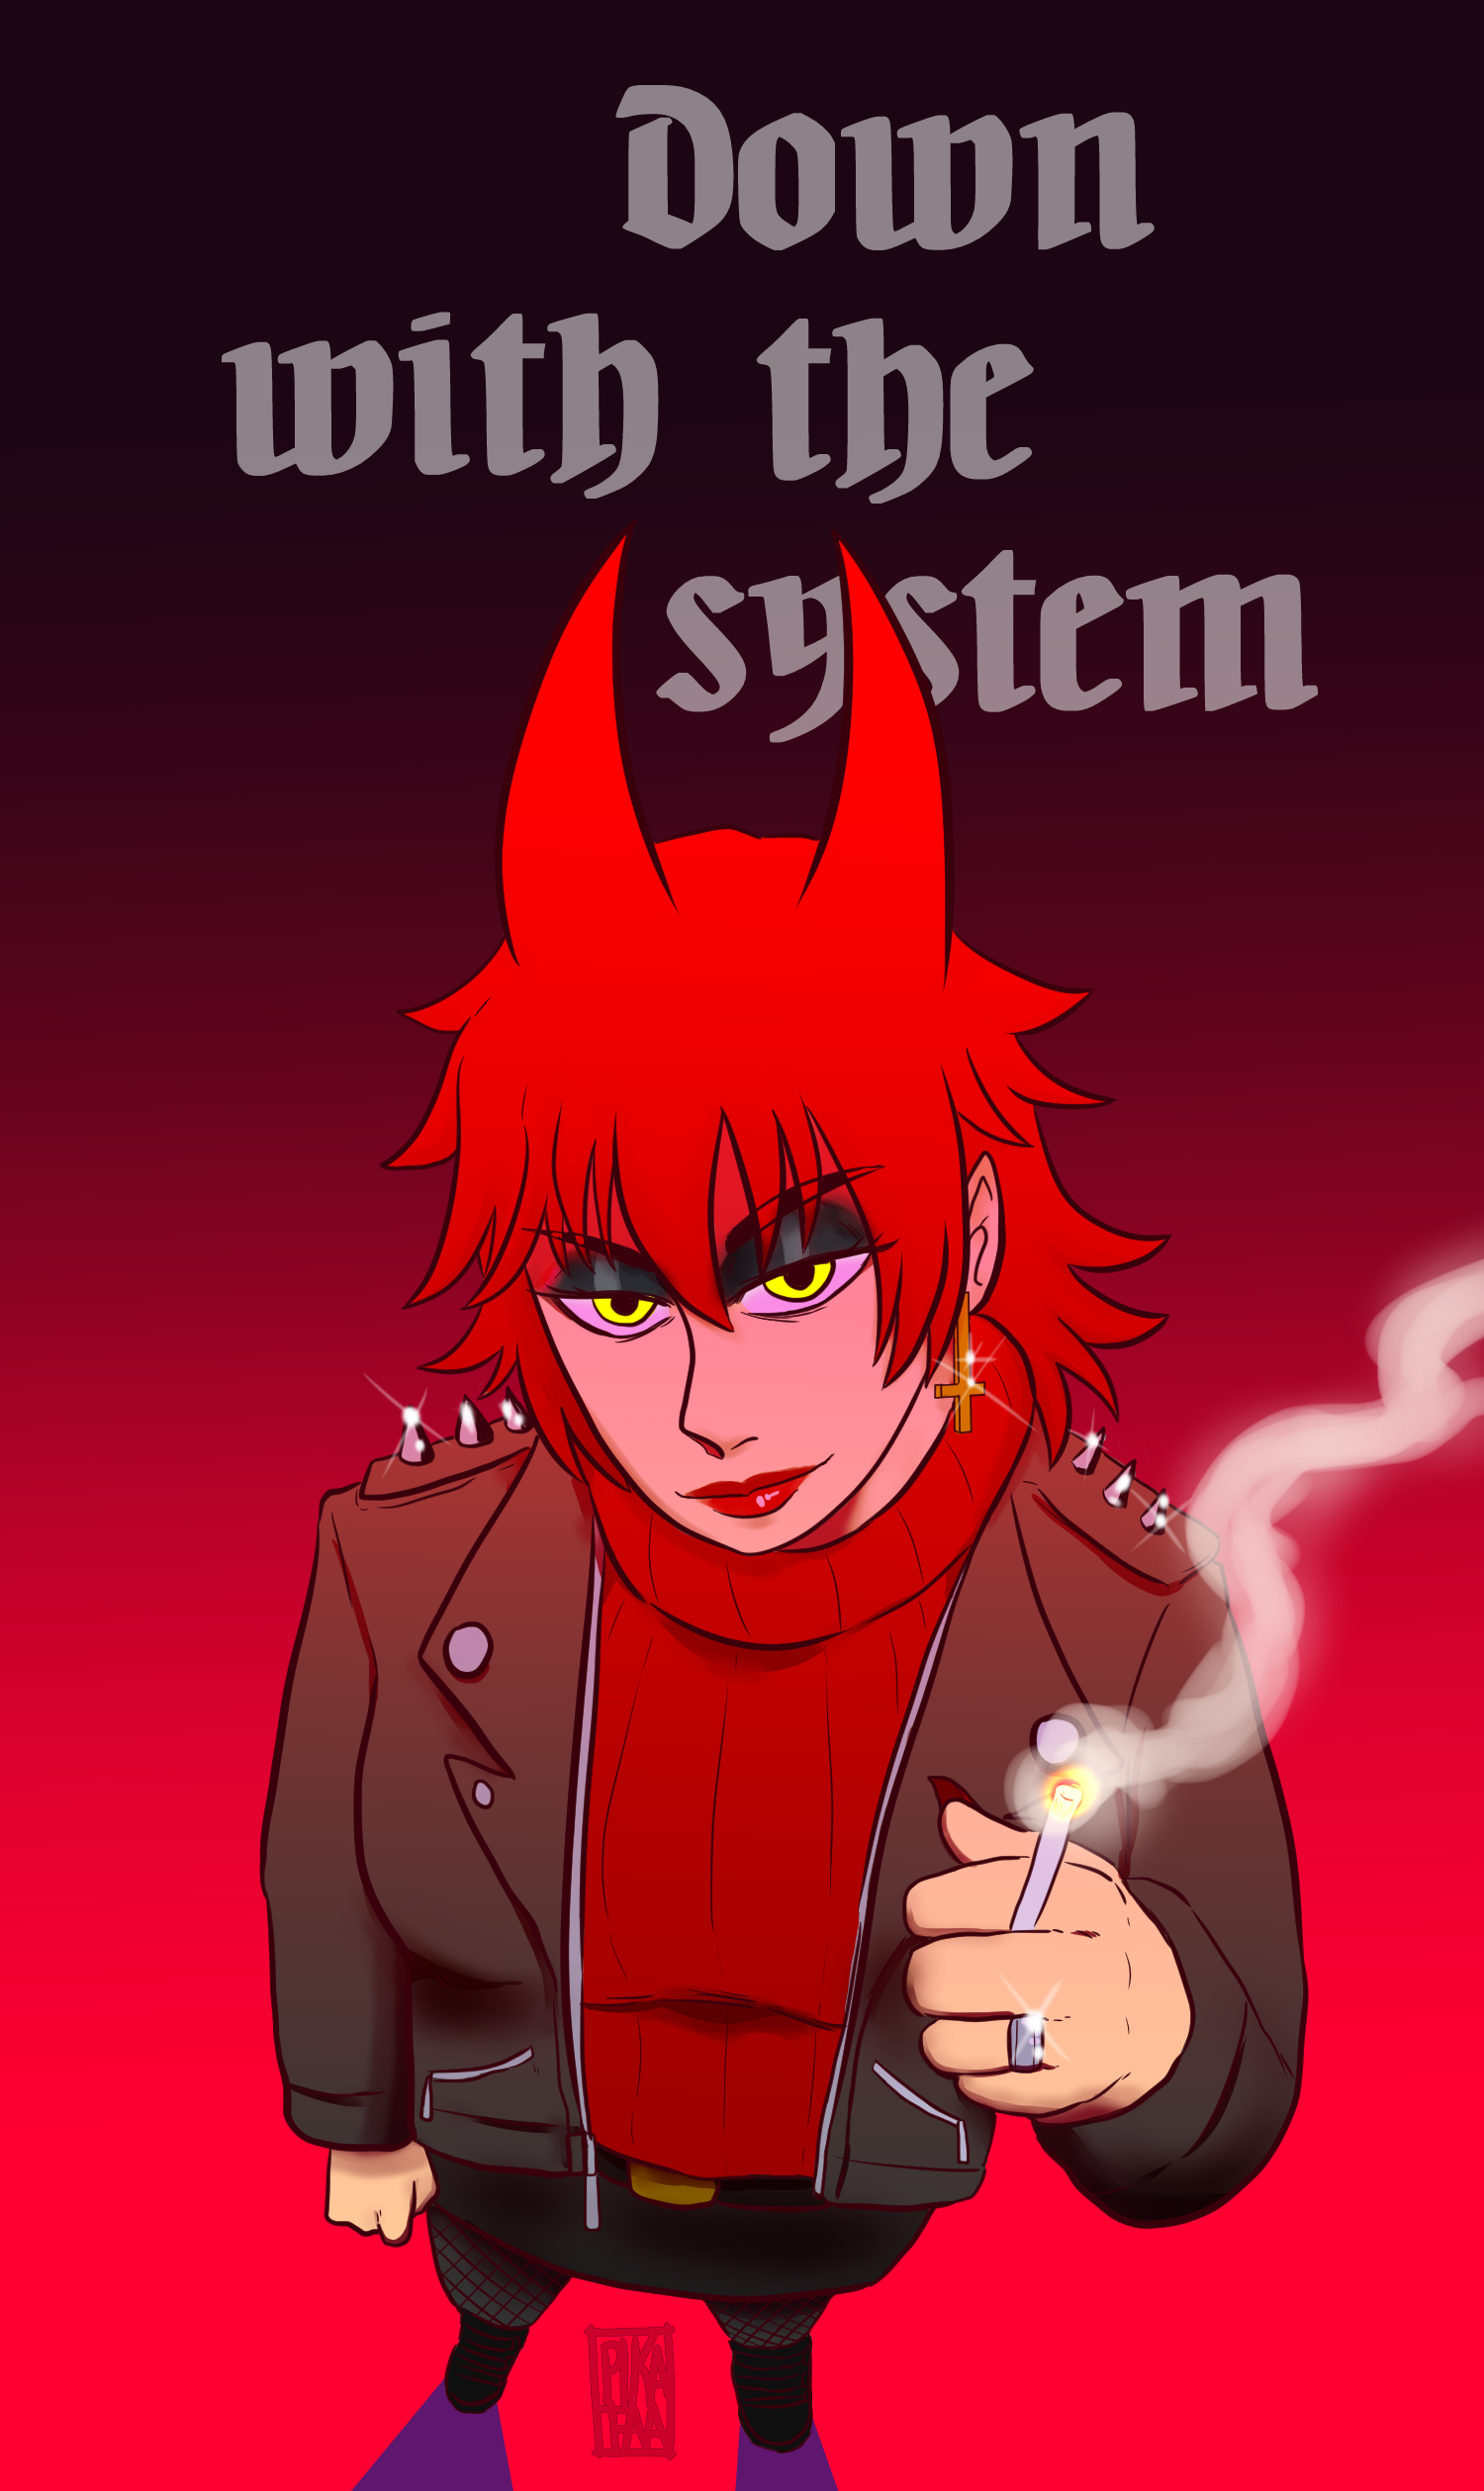 Down with the system